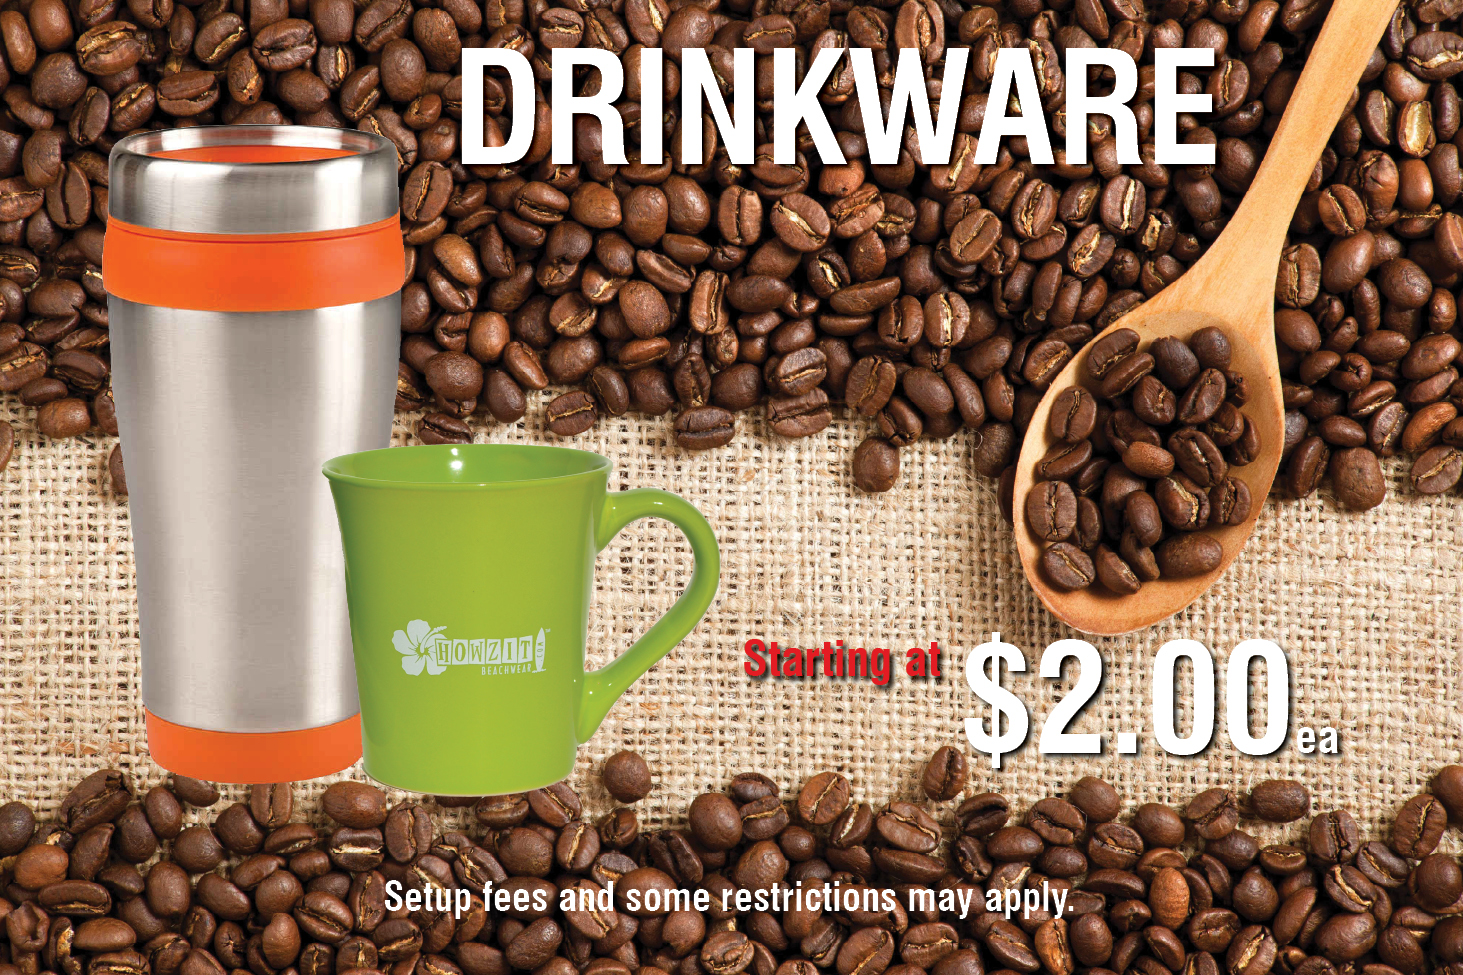 Promotional Product - Drinkware